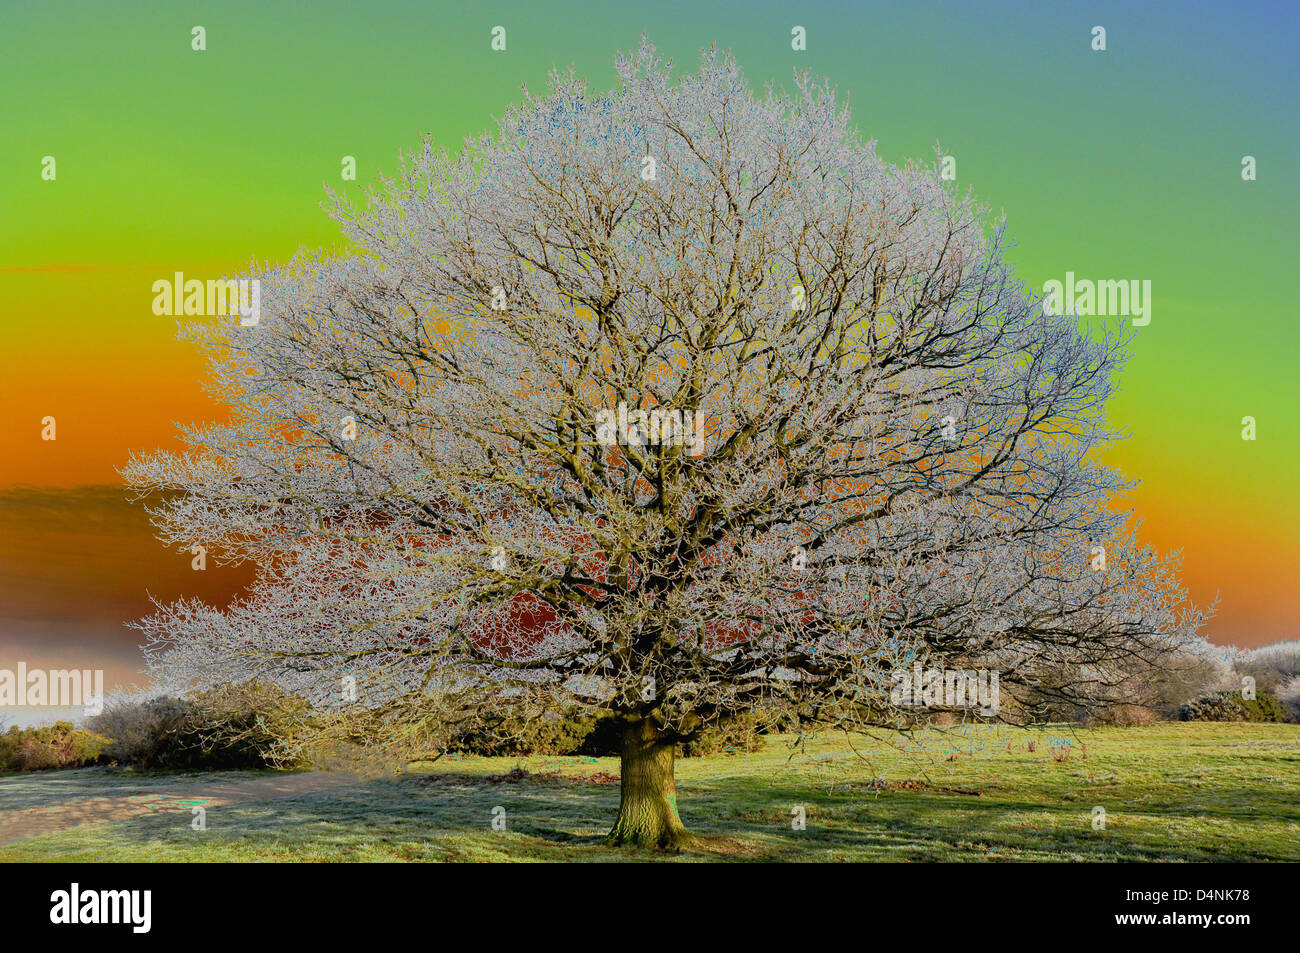 Winter - a frosted oak tree - computer enhanced study - merging pastel shades -  white frost on dark tree branches - Stock Image